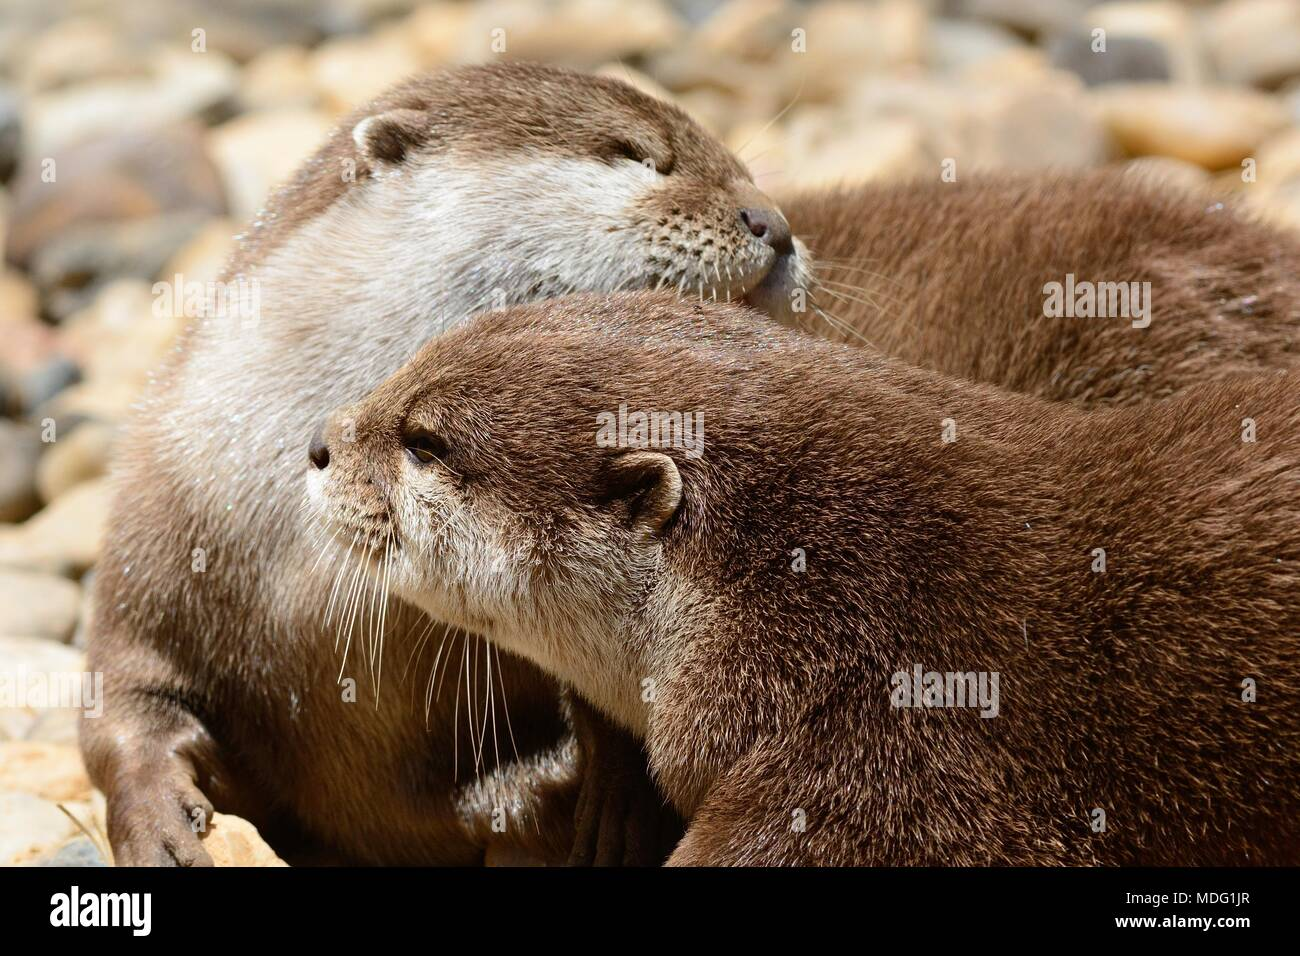 Portrait of two otters cuddling - Stock Image